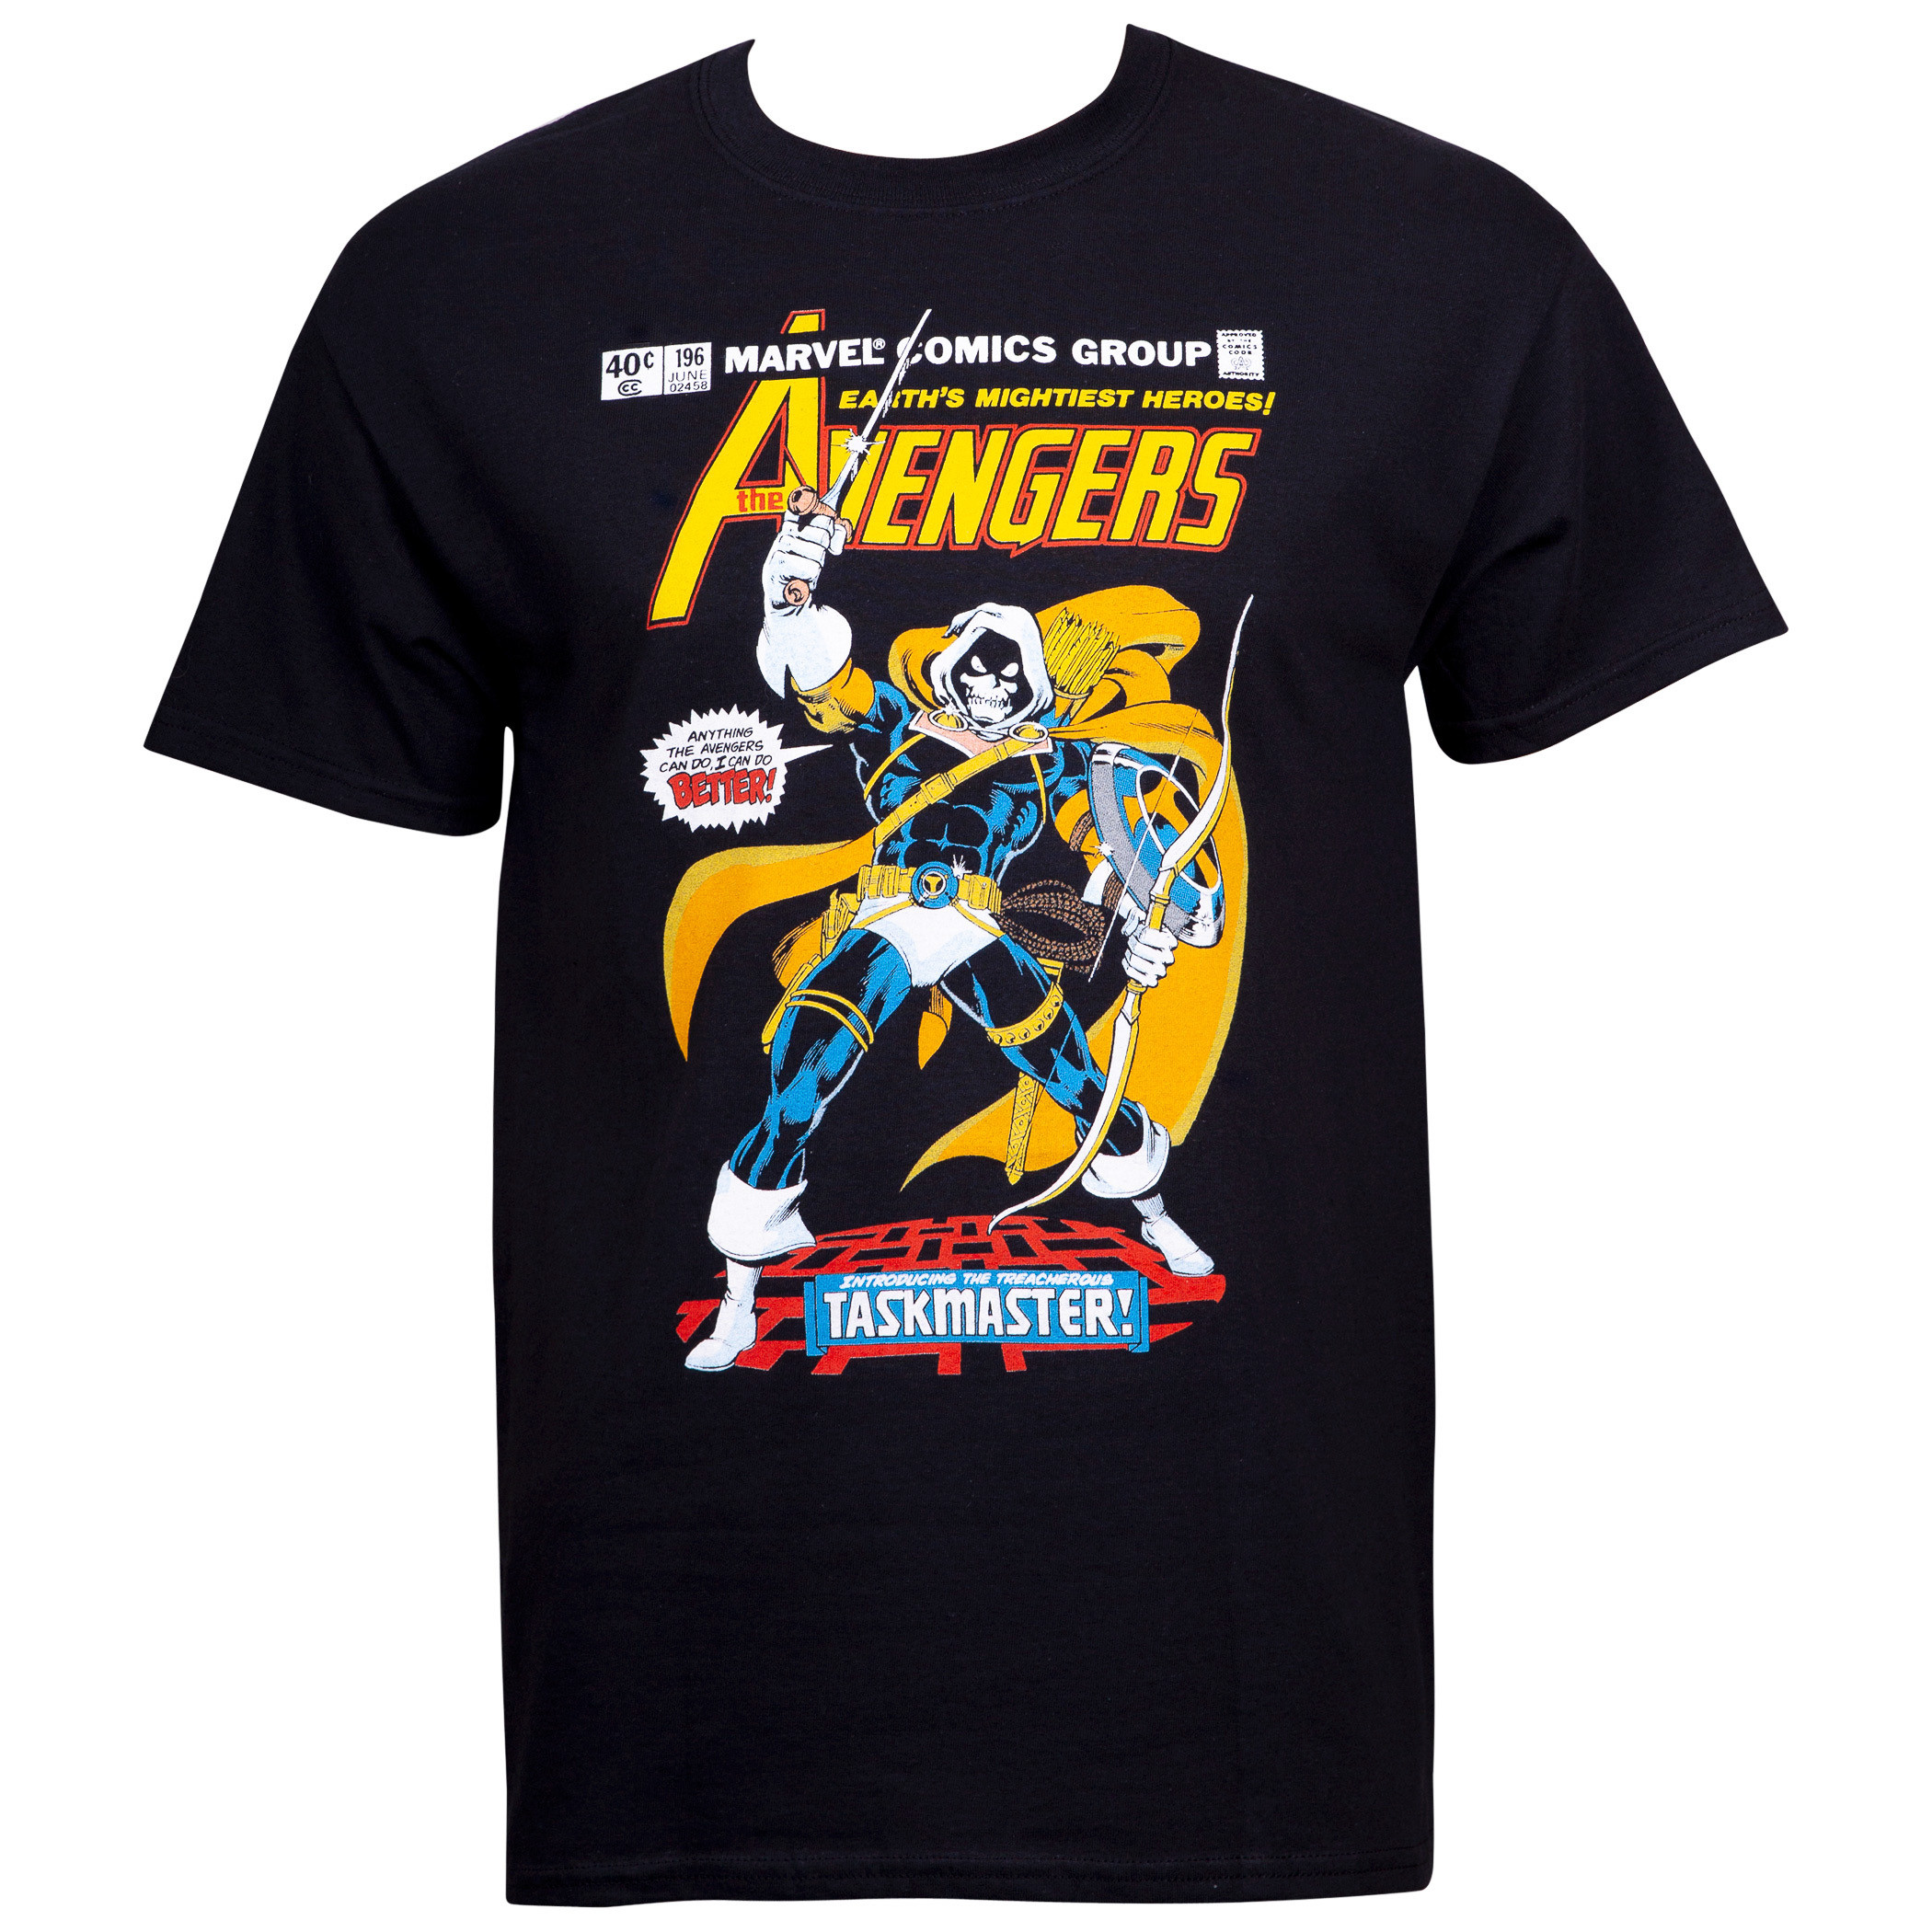 The Taskmaster Avengers Earth's Mightiest Heroes Comic Cover T-Shirt